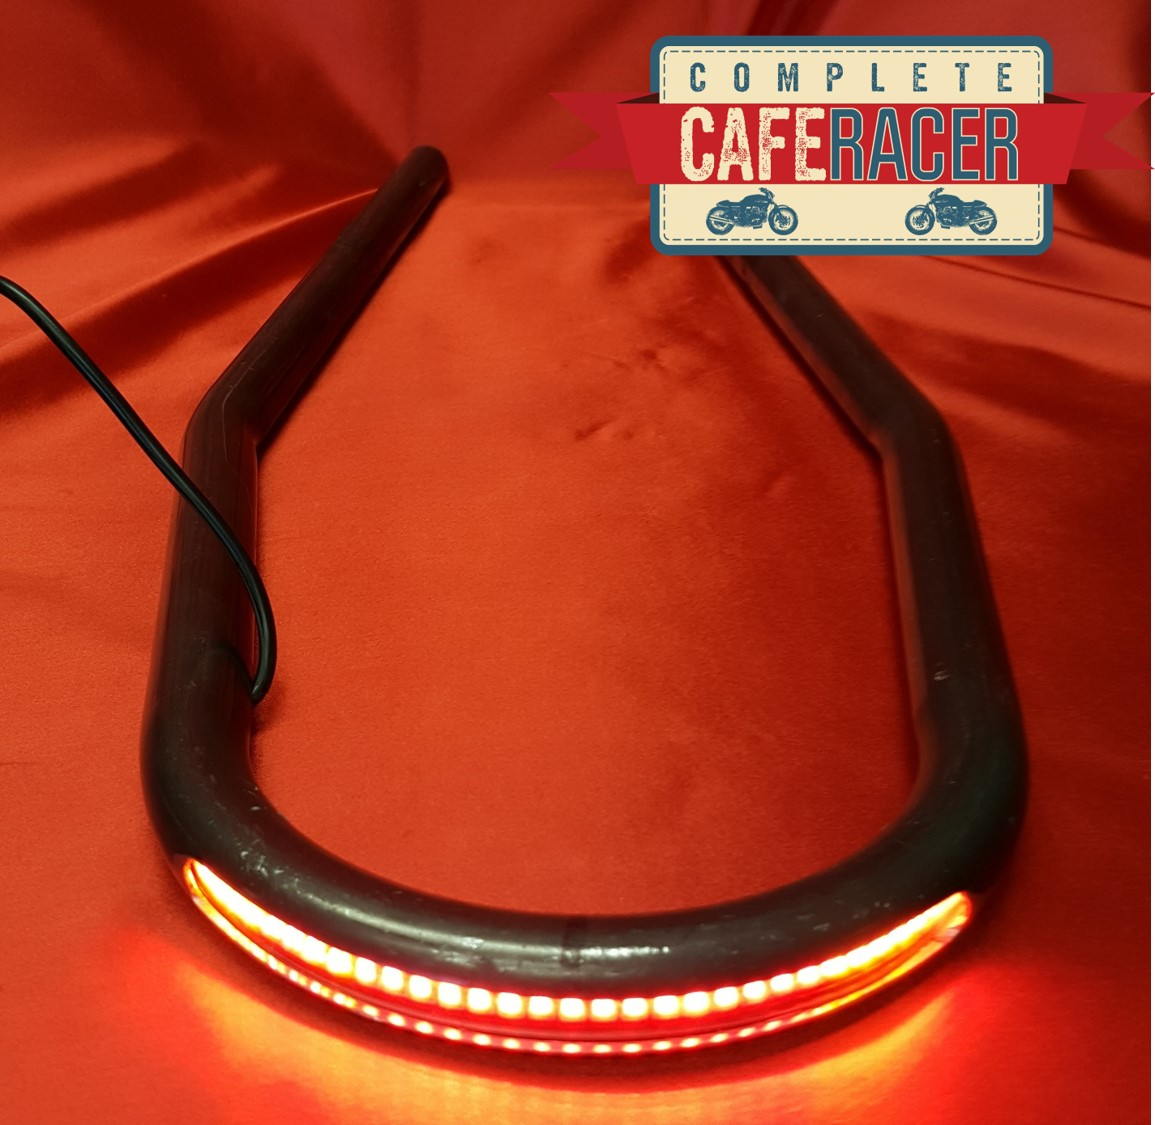 (7)CAFE RACER STEEL SEAT HOOP WITH LED STOP/TAIL LIGHTS AND INDICATORS